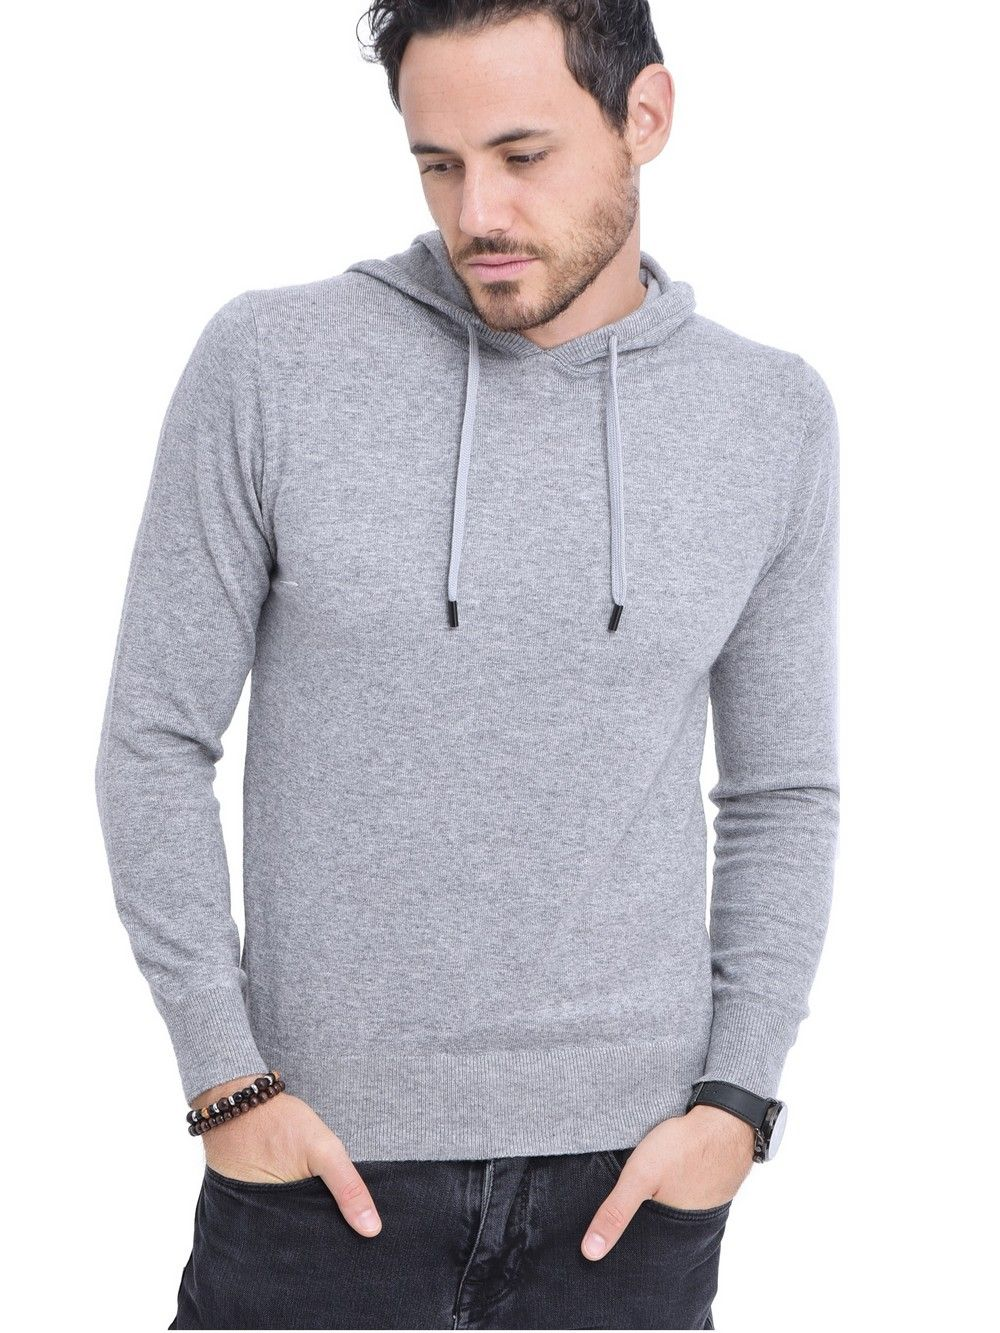 William De Faye Hooded Sweater with Cords in Light Grey